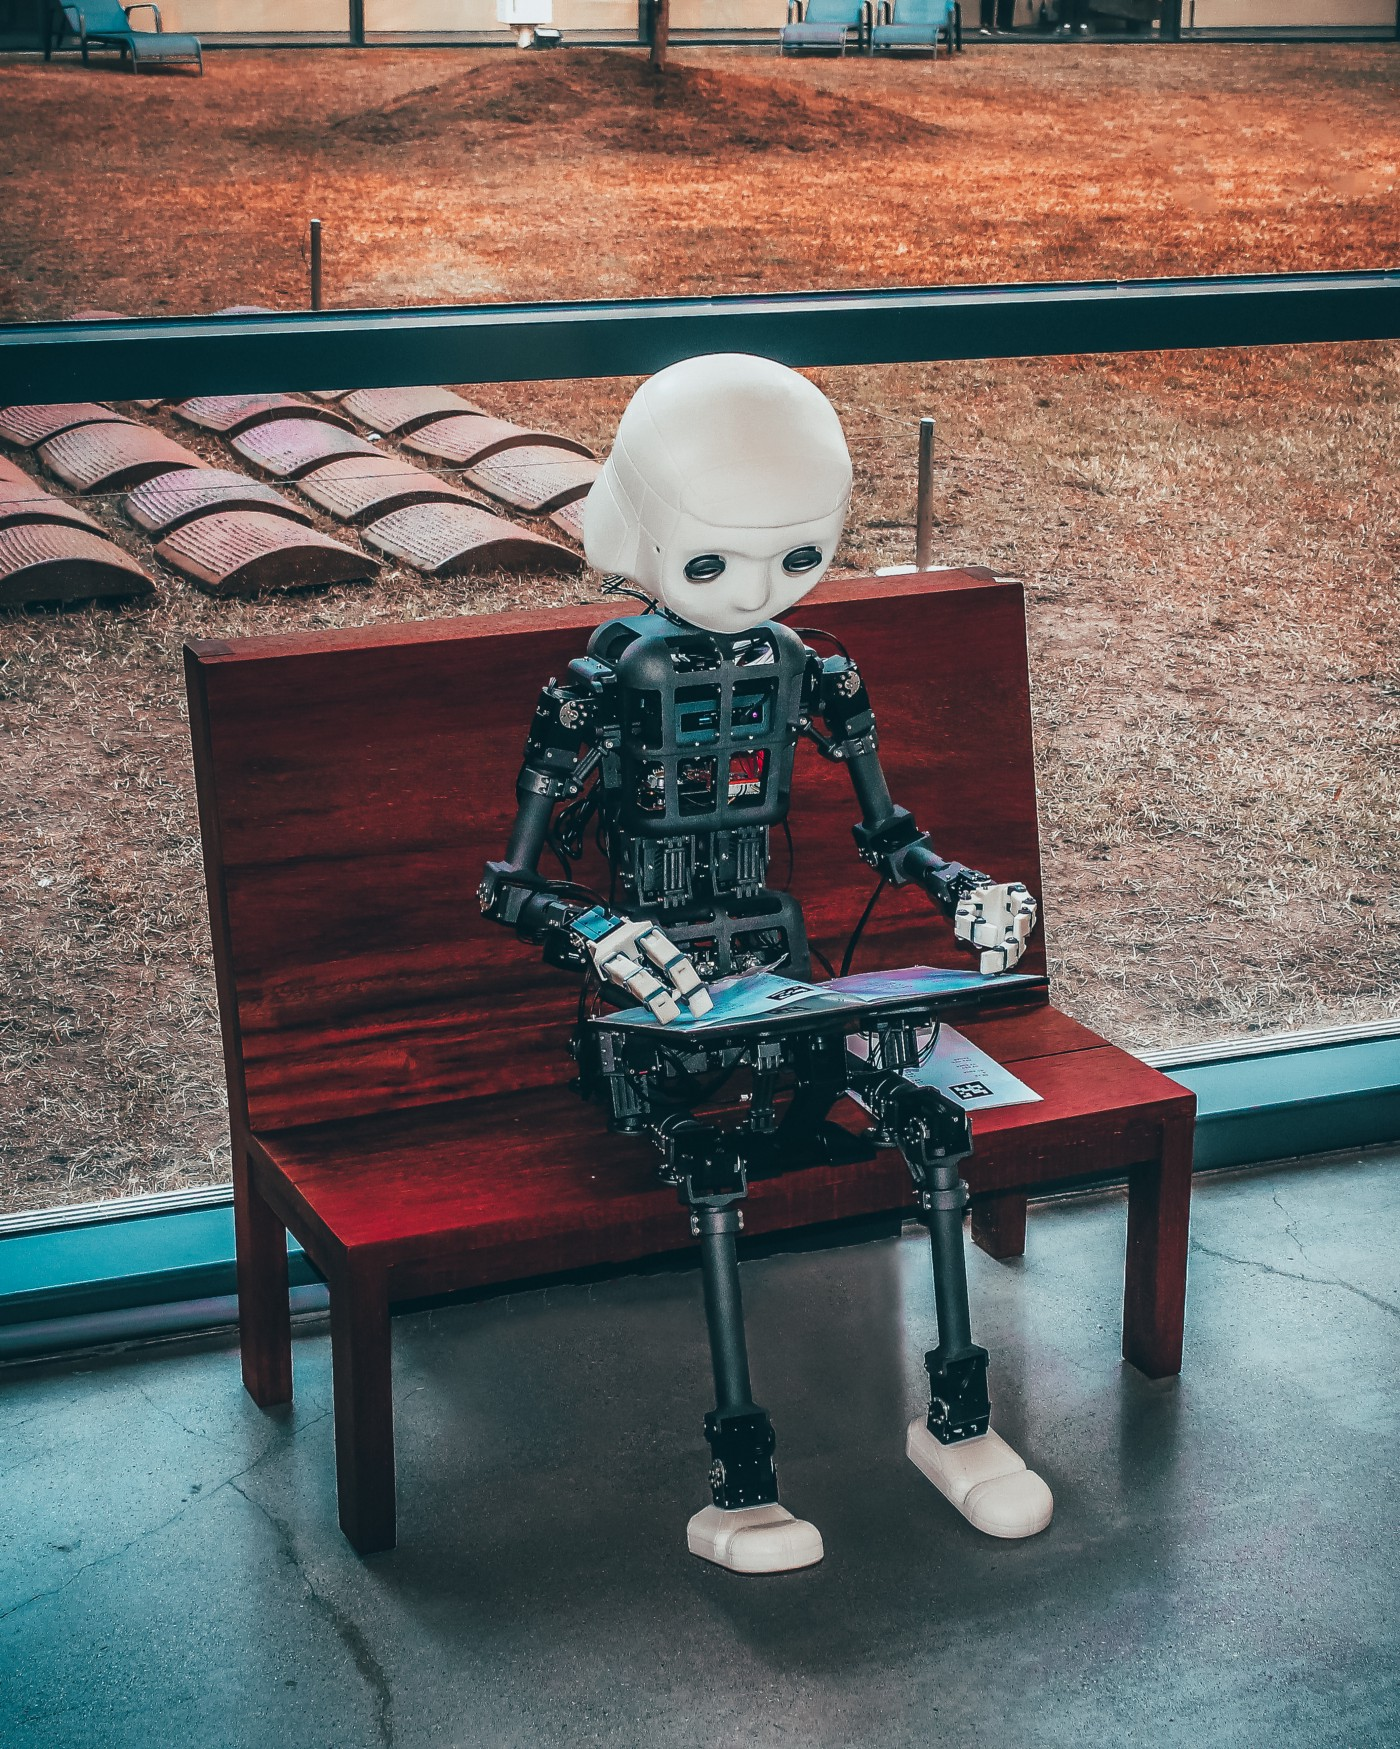 humanoid robot sitting on a bench looking at a laptop